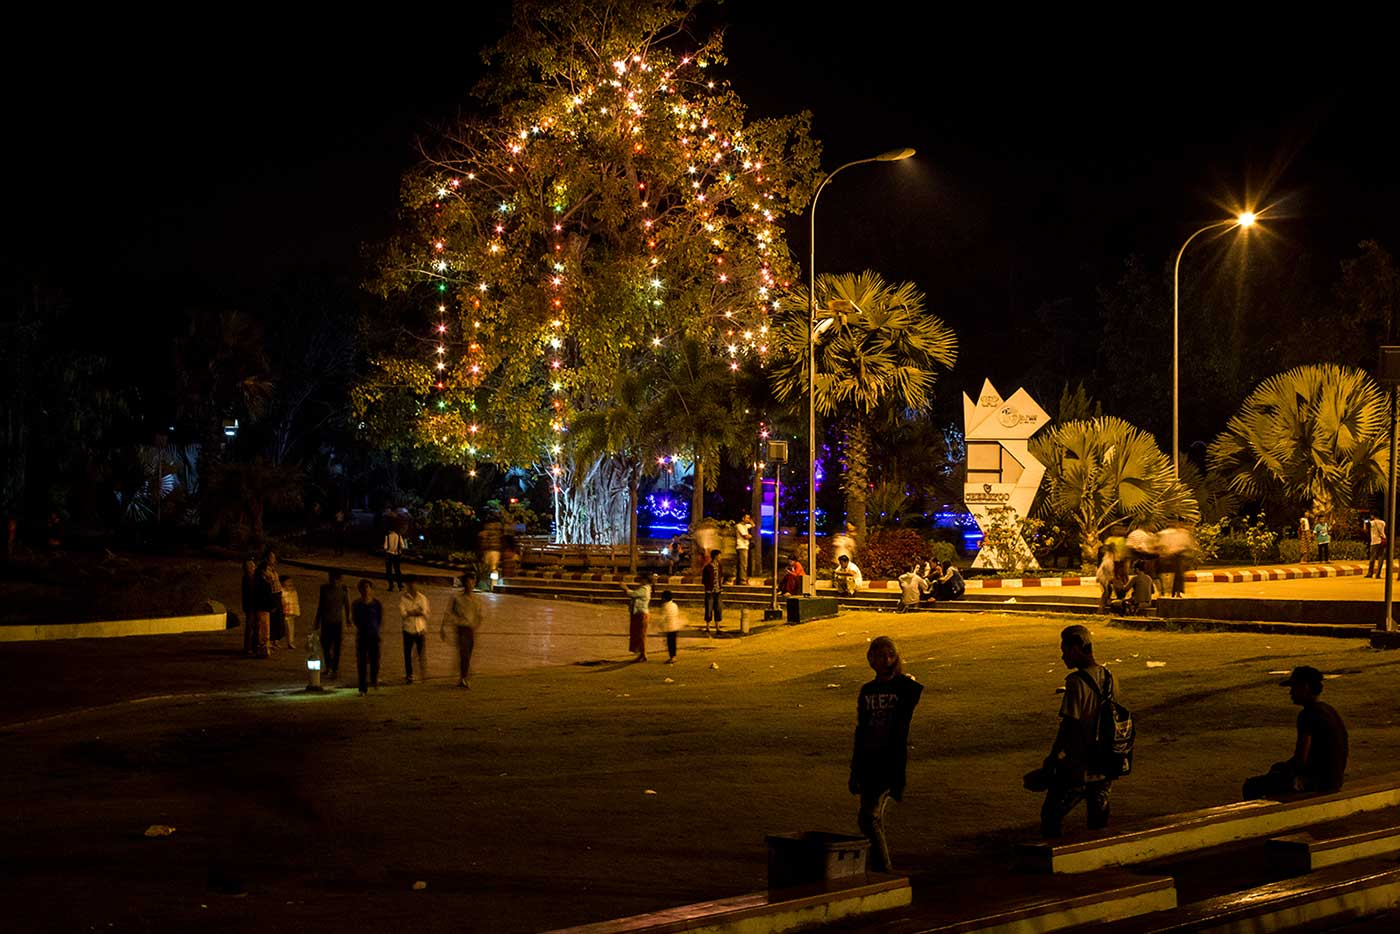 The Fountain Park is a popular evening hangout filled with people, music, and a festival atmosphere.